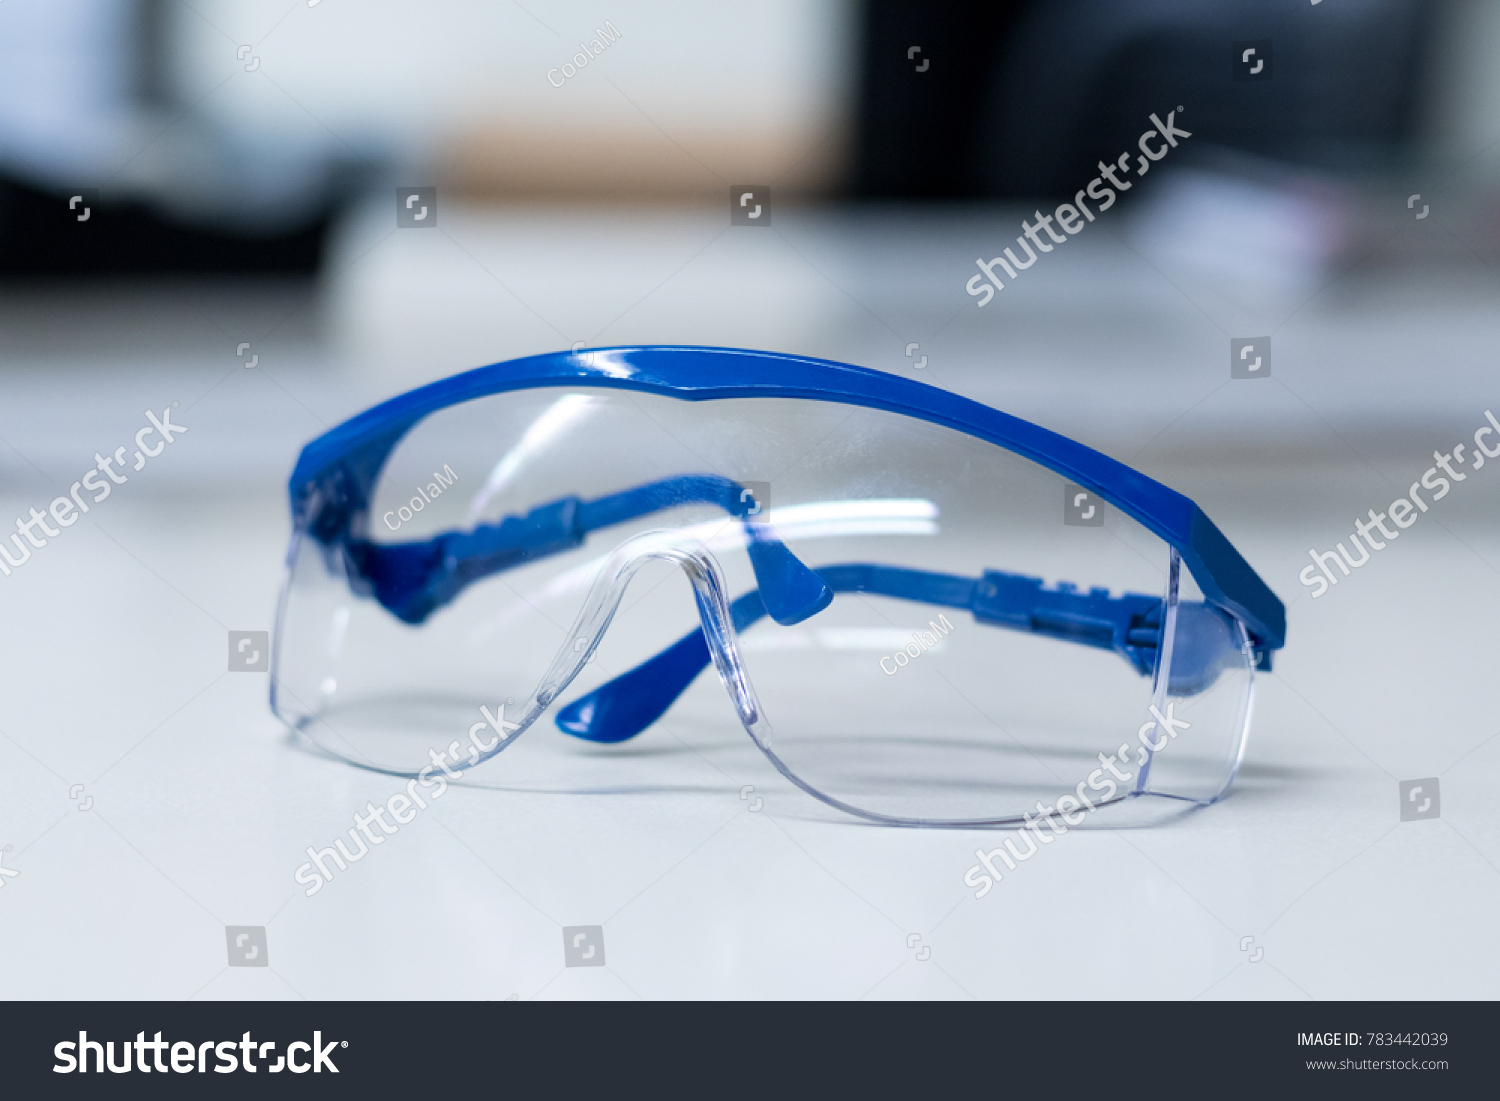 Close-up of blue safety goggles on a desk in a research lab. #783442039